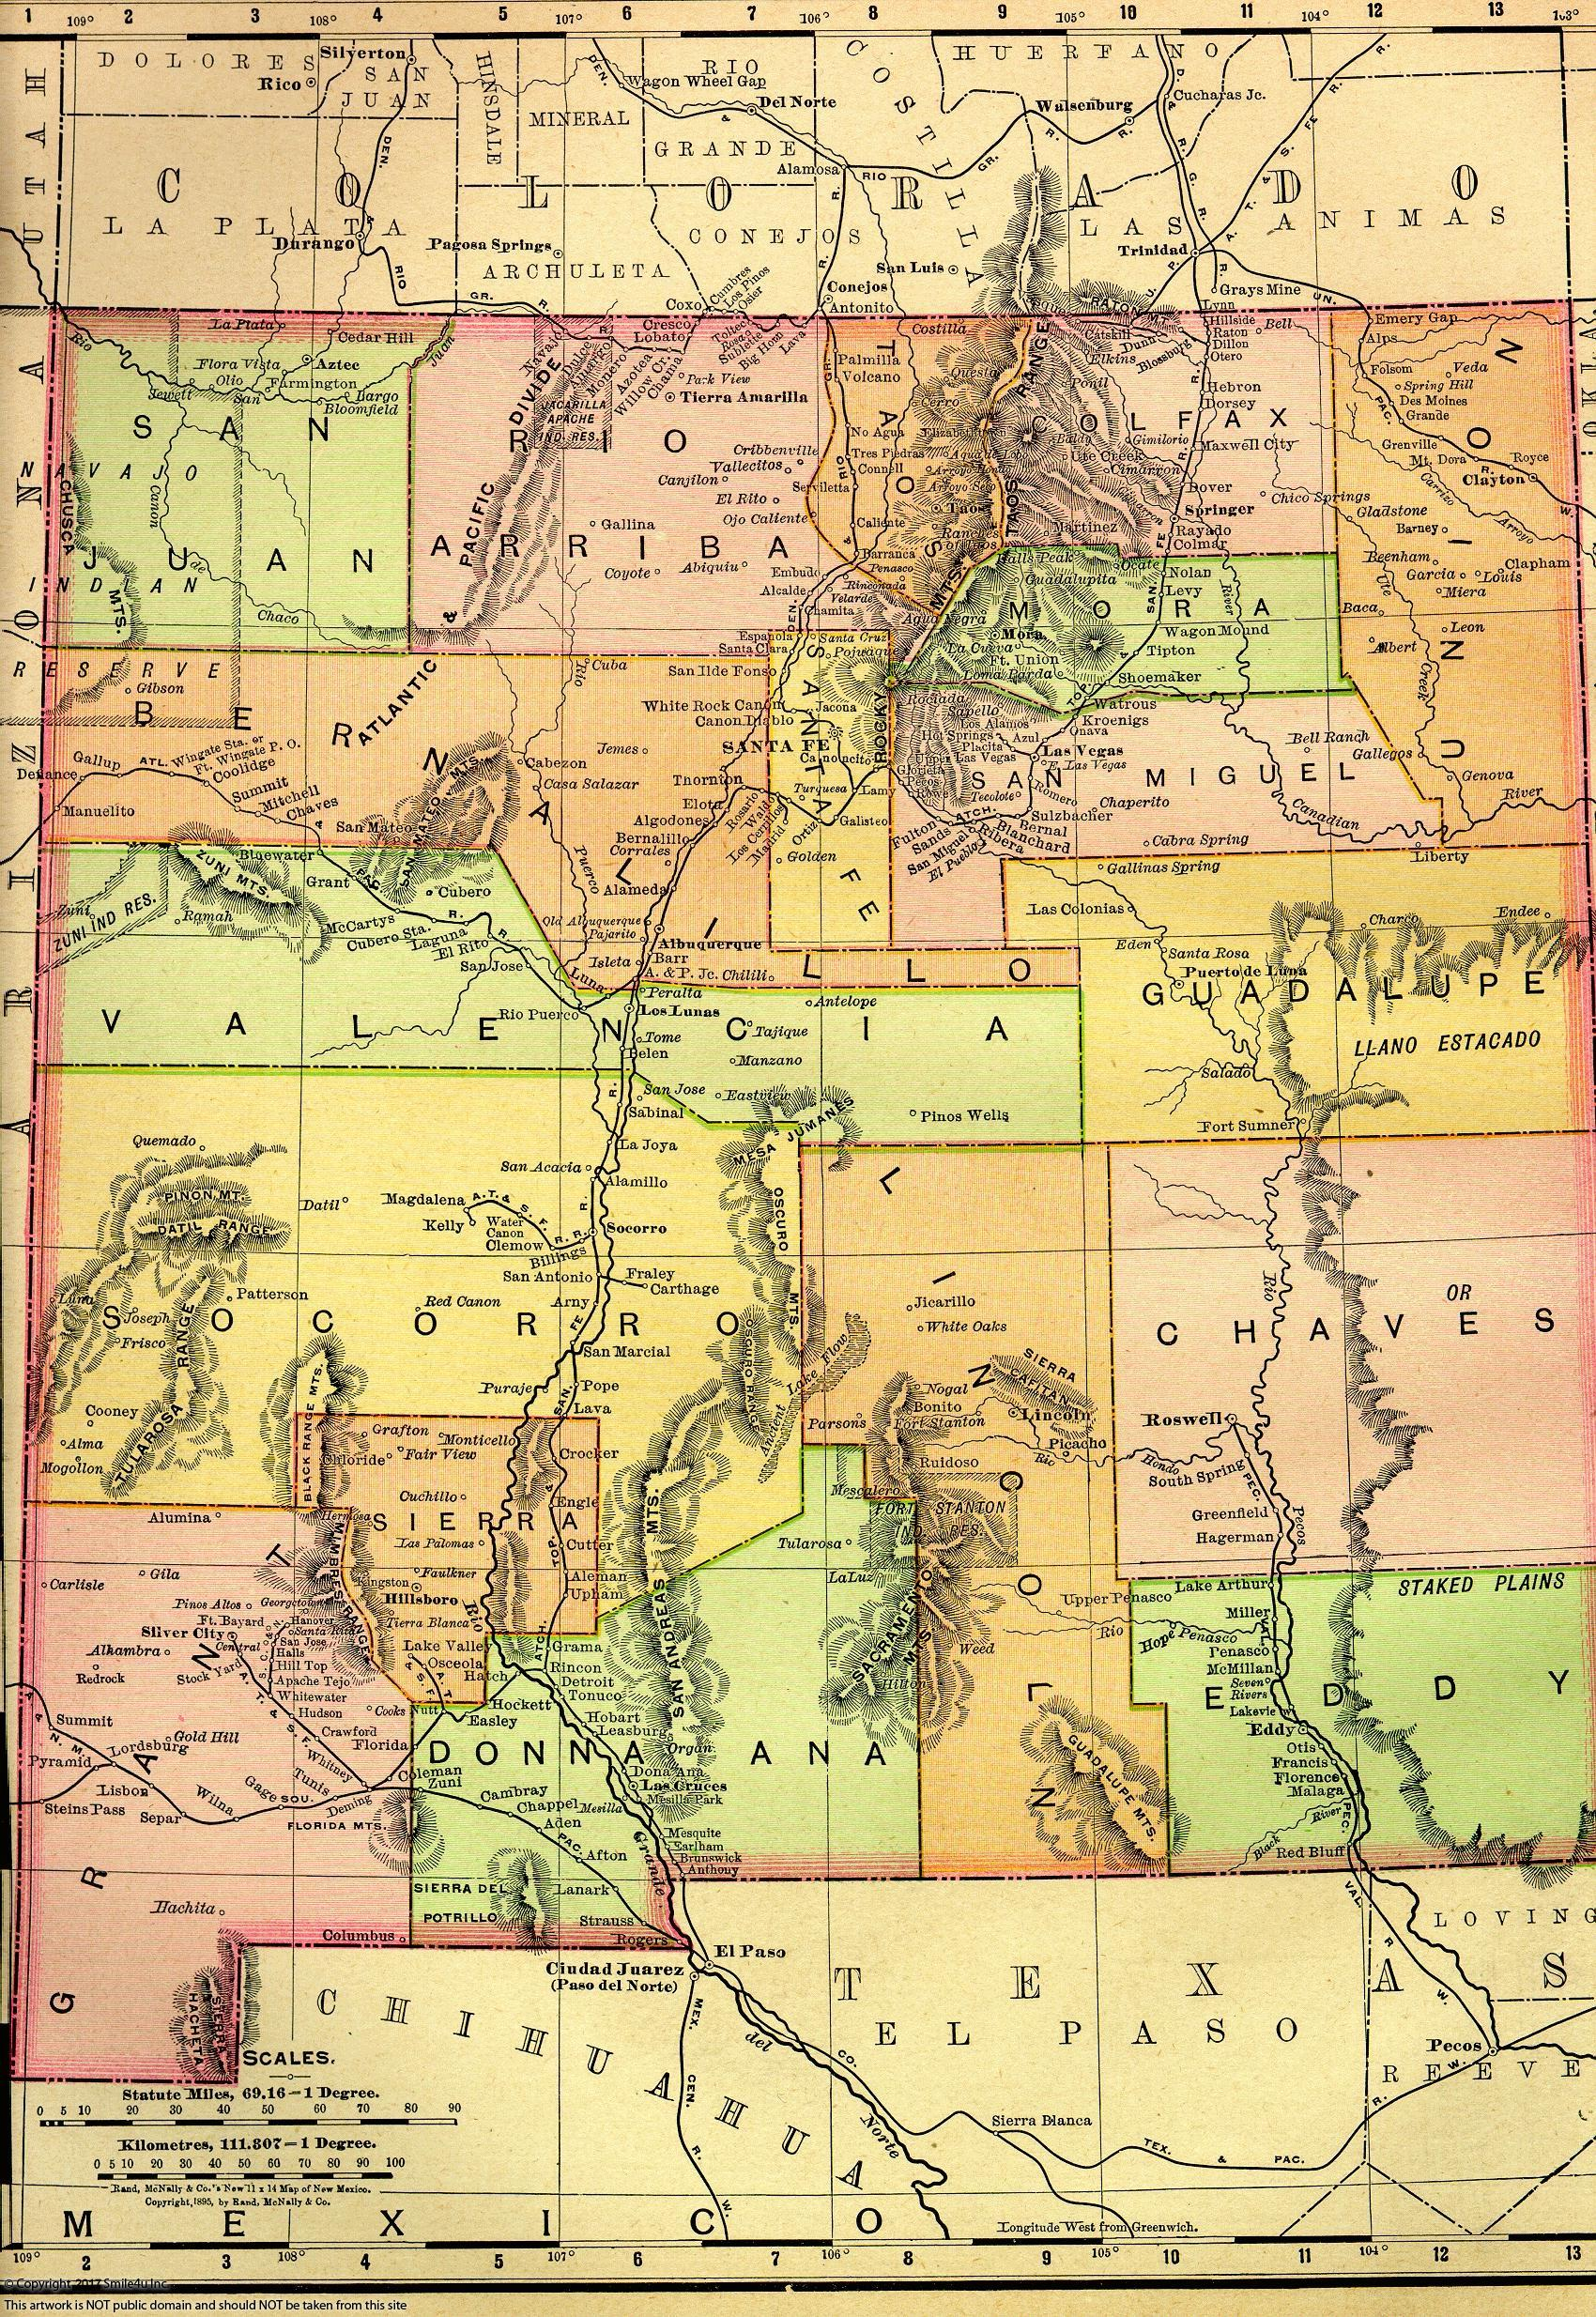 887563_watermarked_New Mexico State Map in 1895.jpg